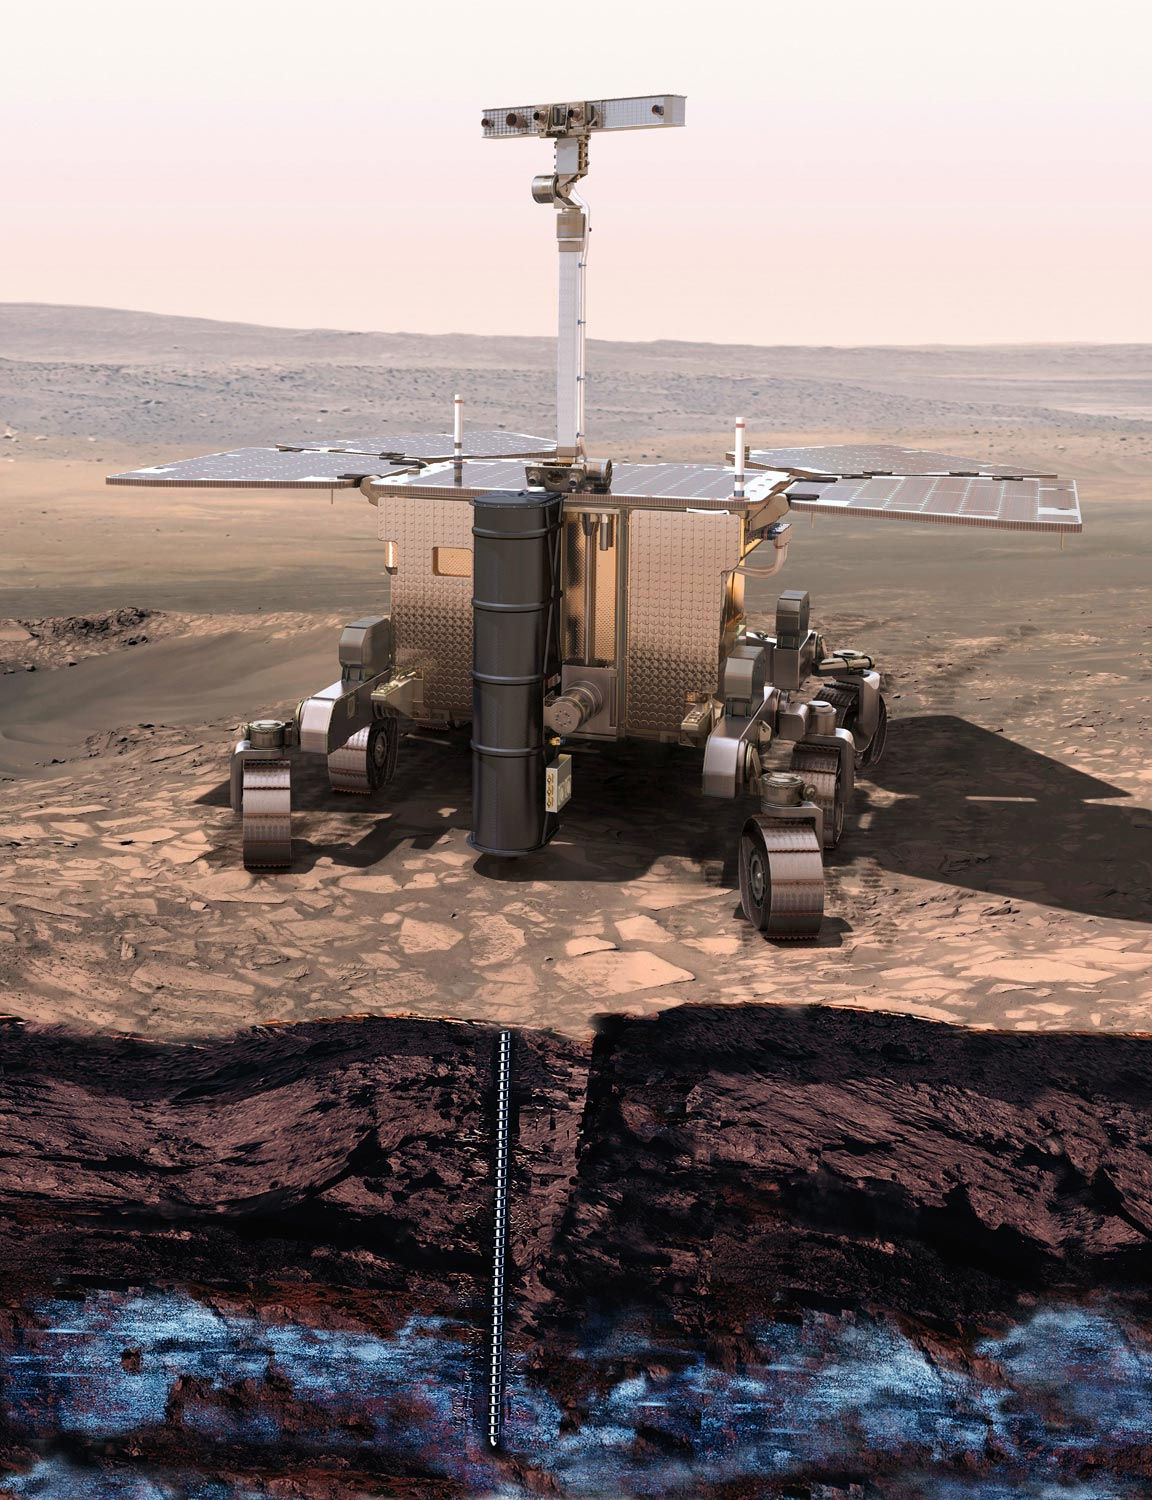 Astrophysicist Investigates: Possibility of Life Below the Surface of Mars